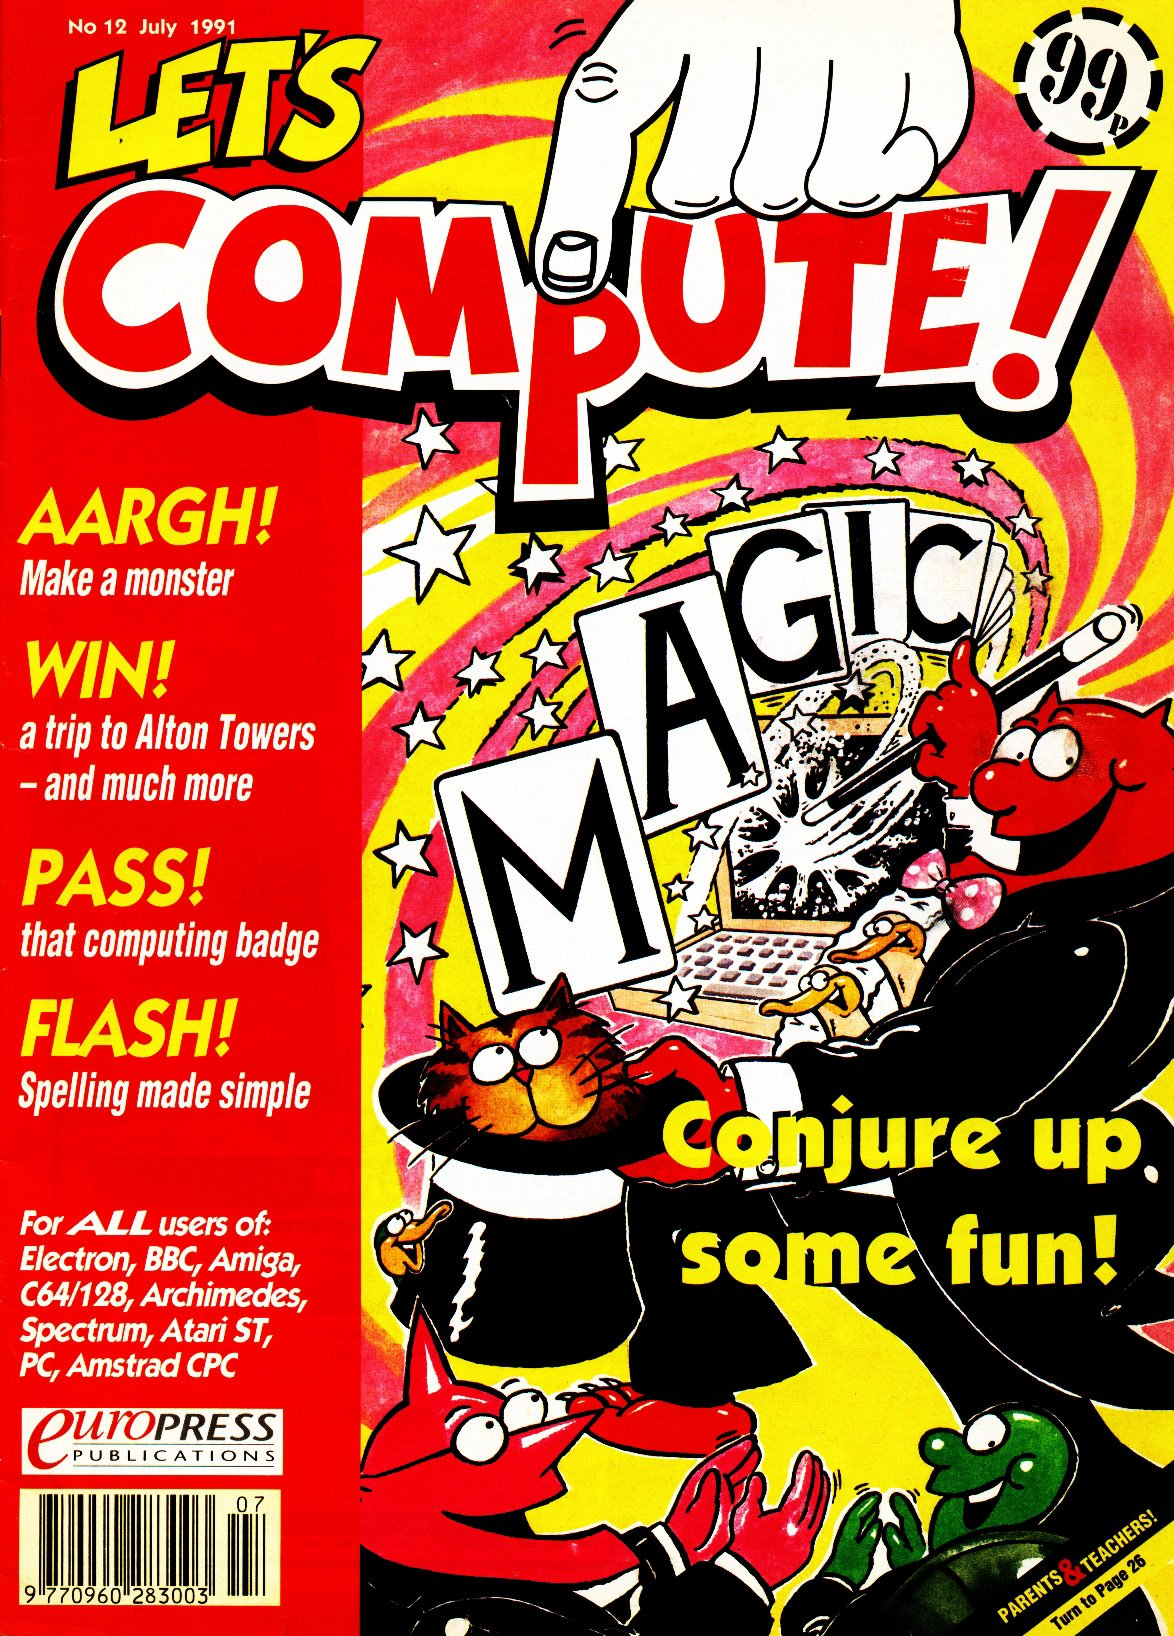 Let's Compute Issue 12 (July 1991)